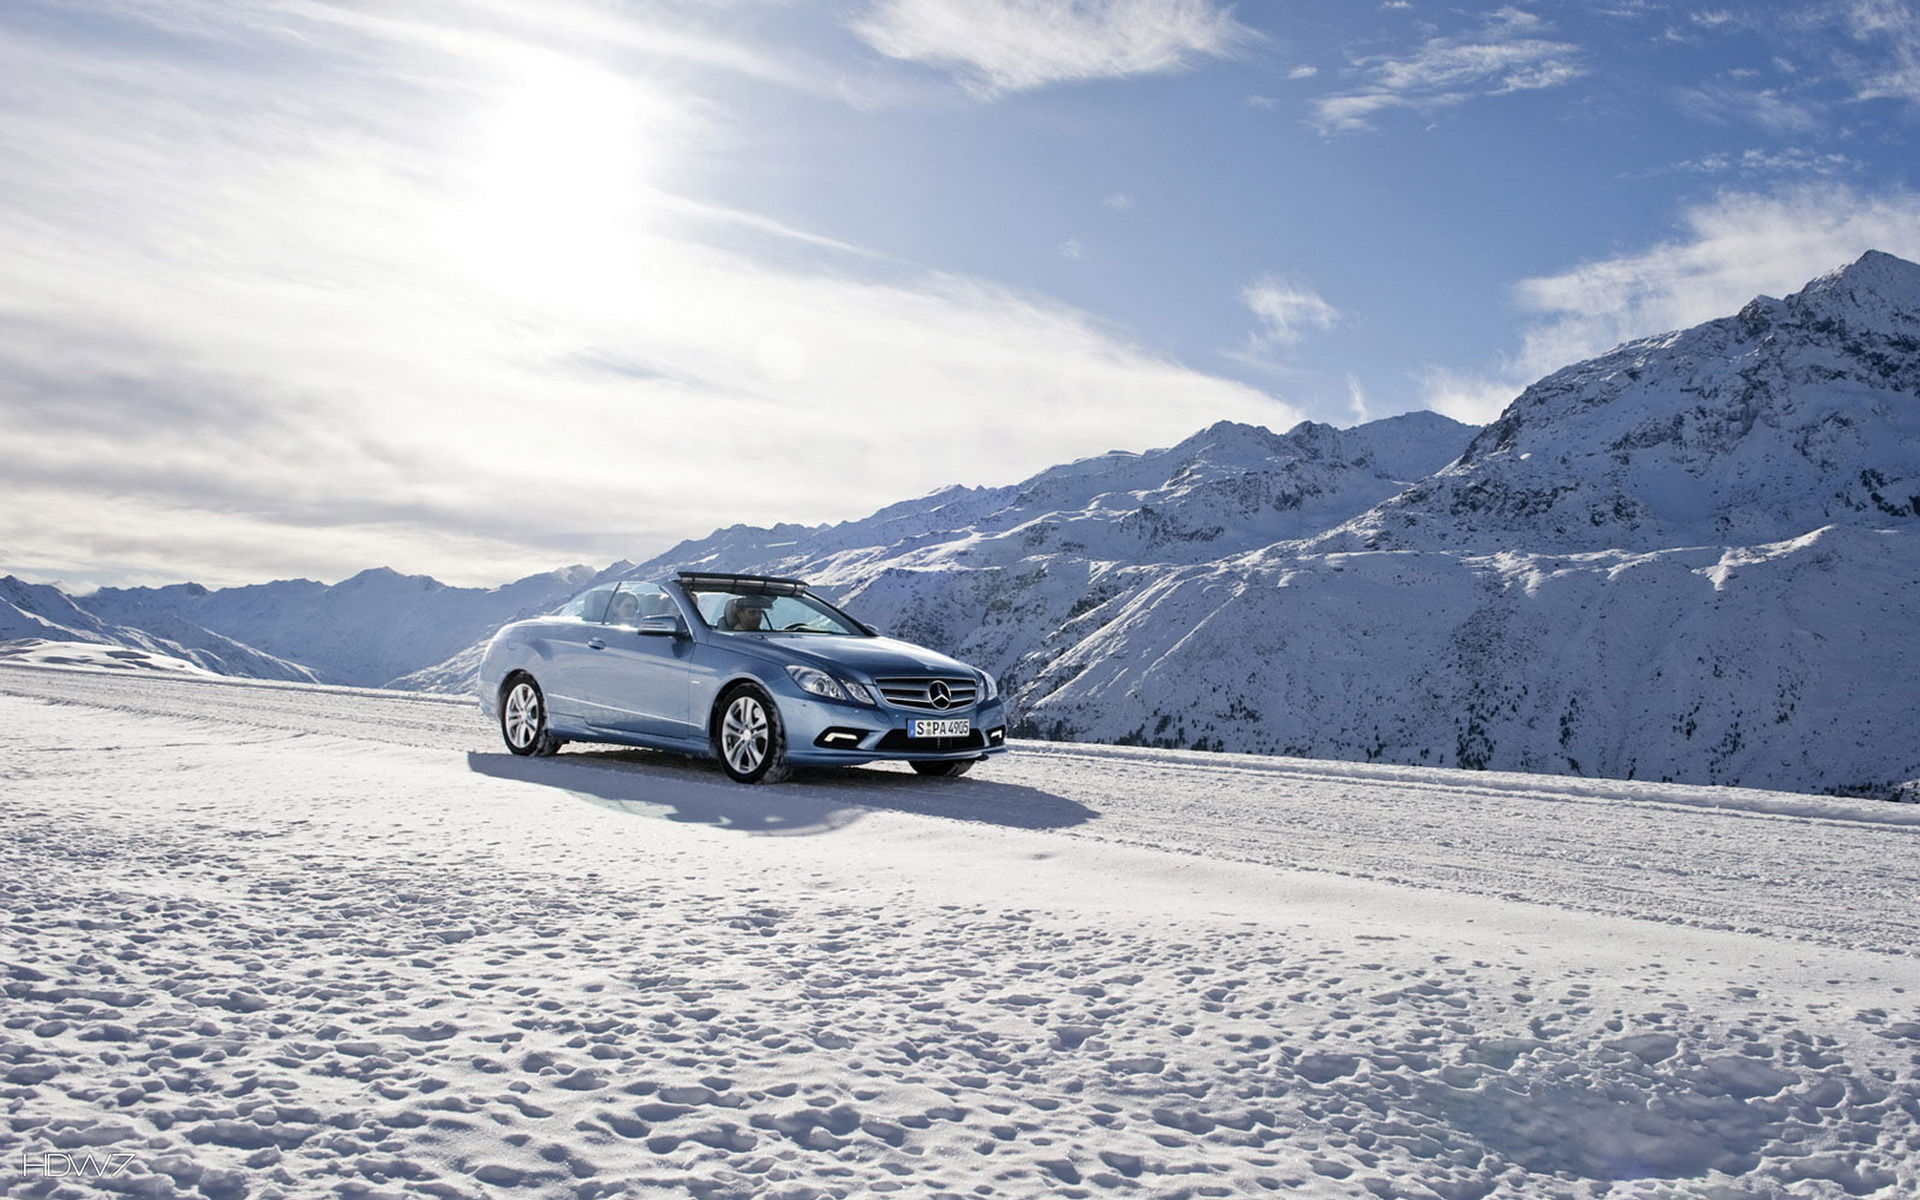 Mercedes E Klasse Coupe On A Mountain Road In The Winter Wallpaper